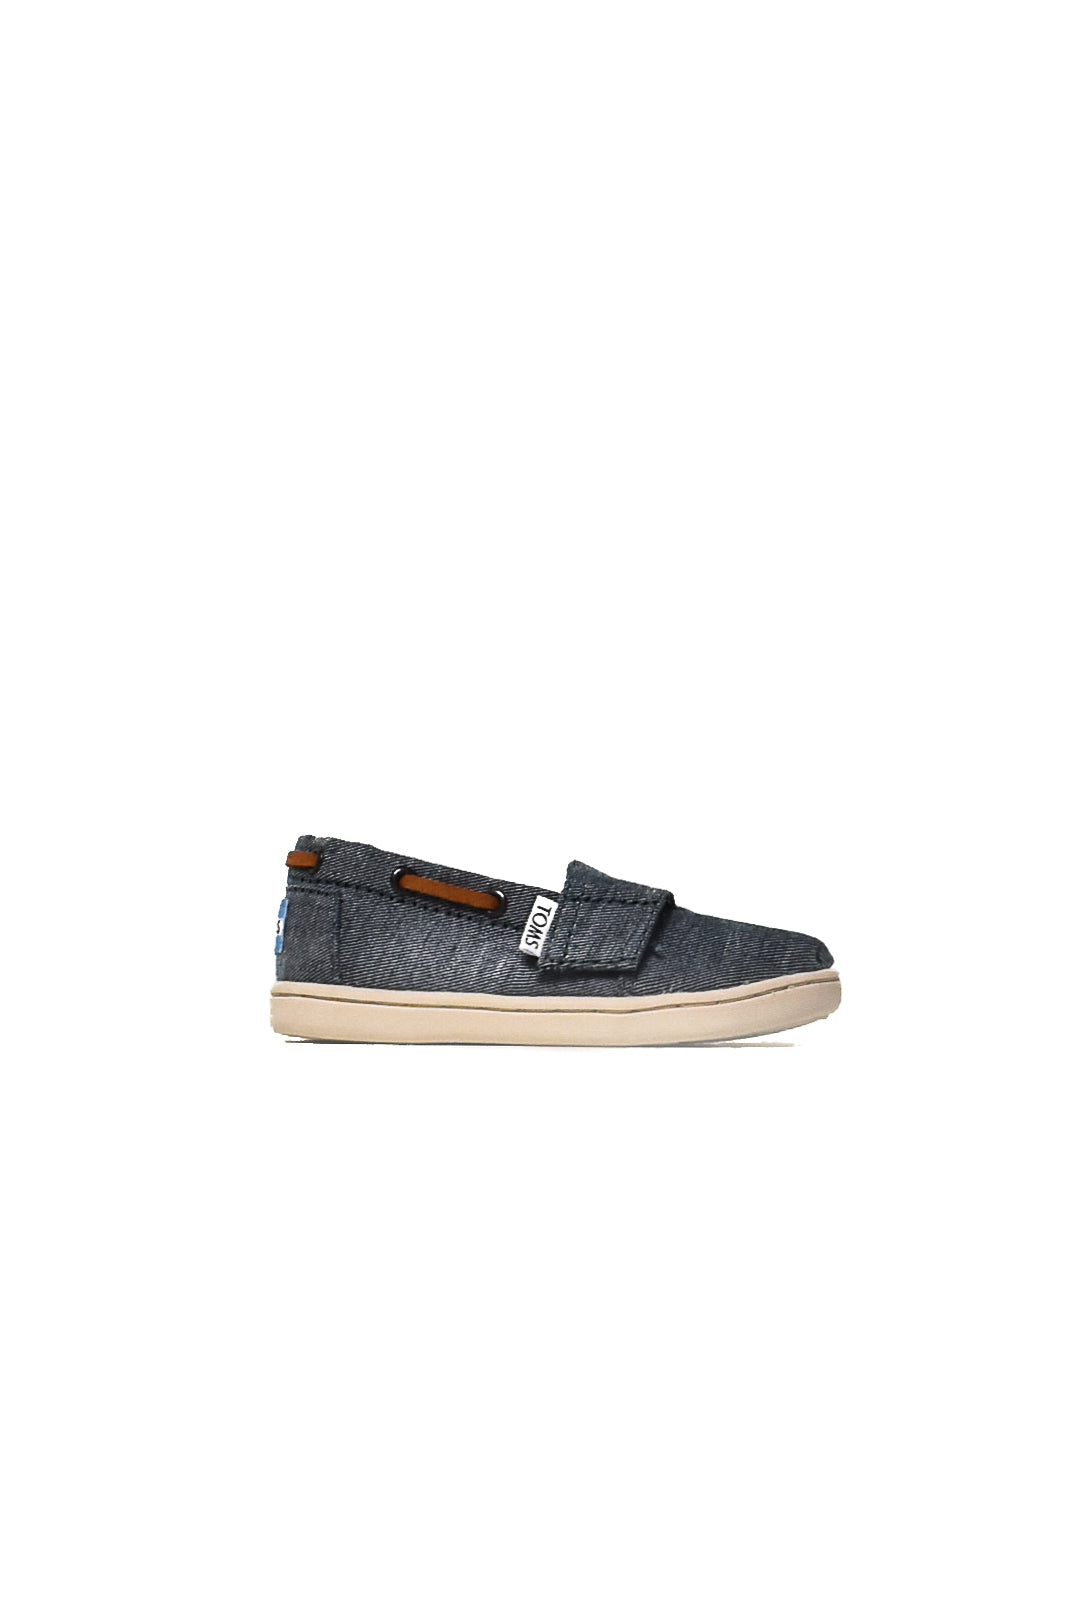 10006965 Toms Baby~ Shoes EU 21 at Retykle